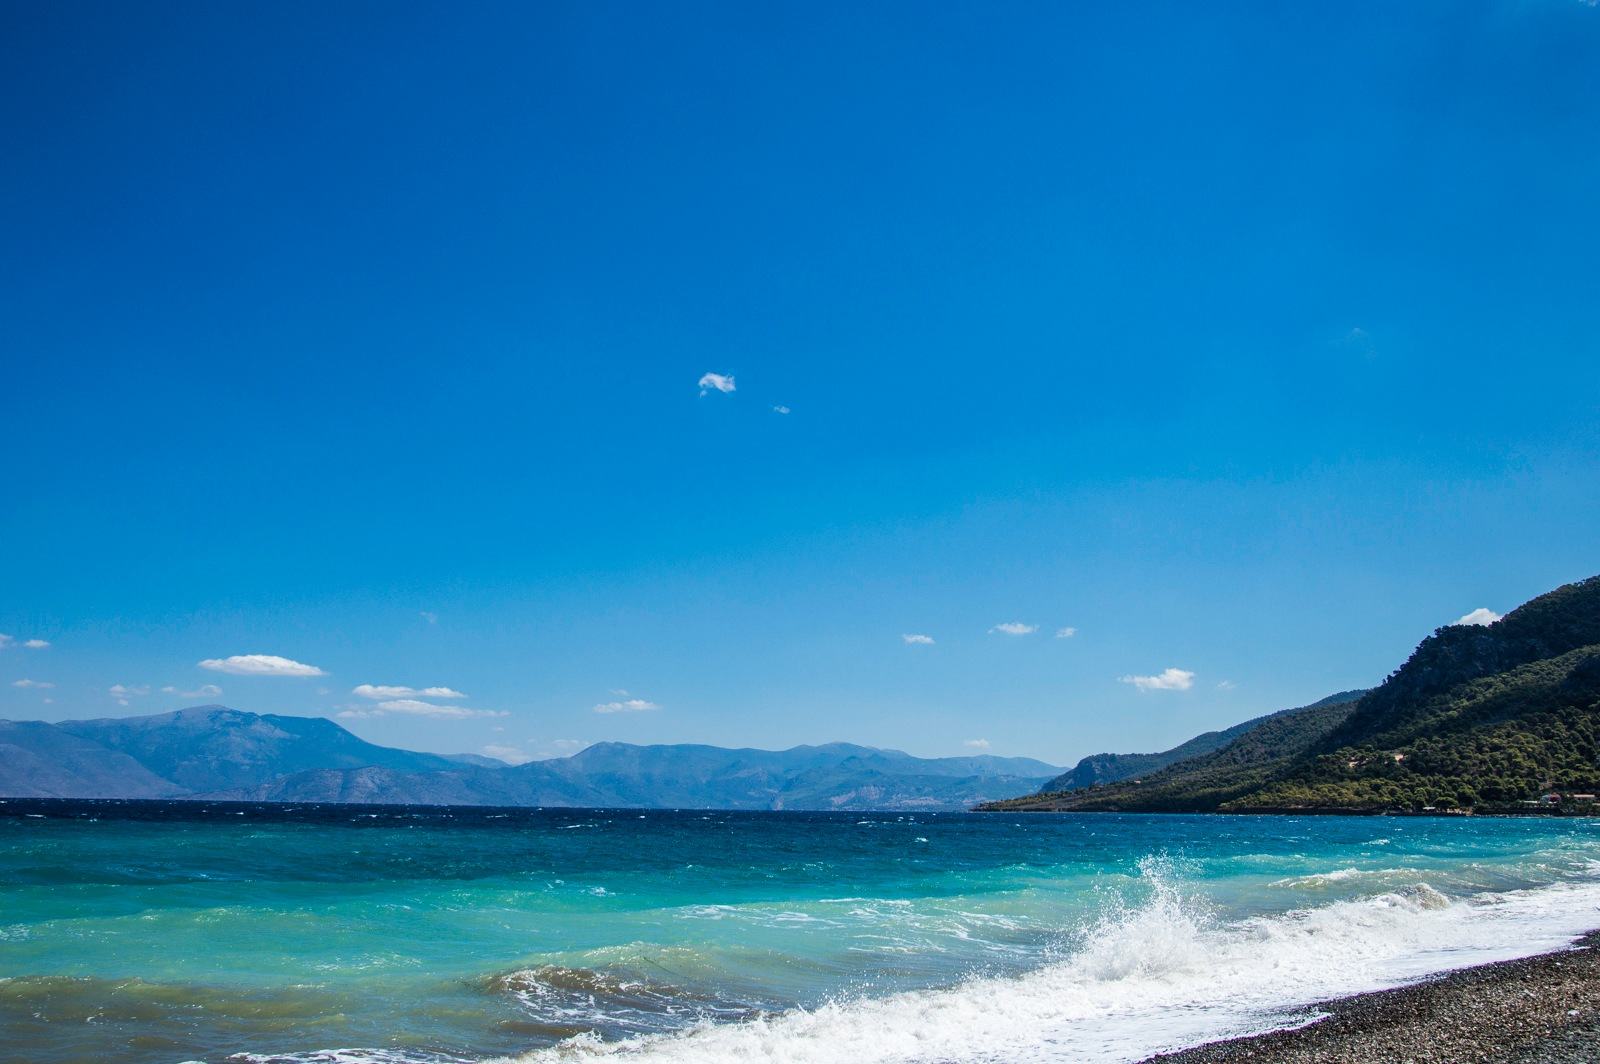 Summer in Greece [Sun, sea & Colors] Vol. 2 by George Stergiopoulos